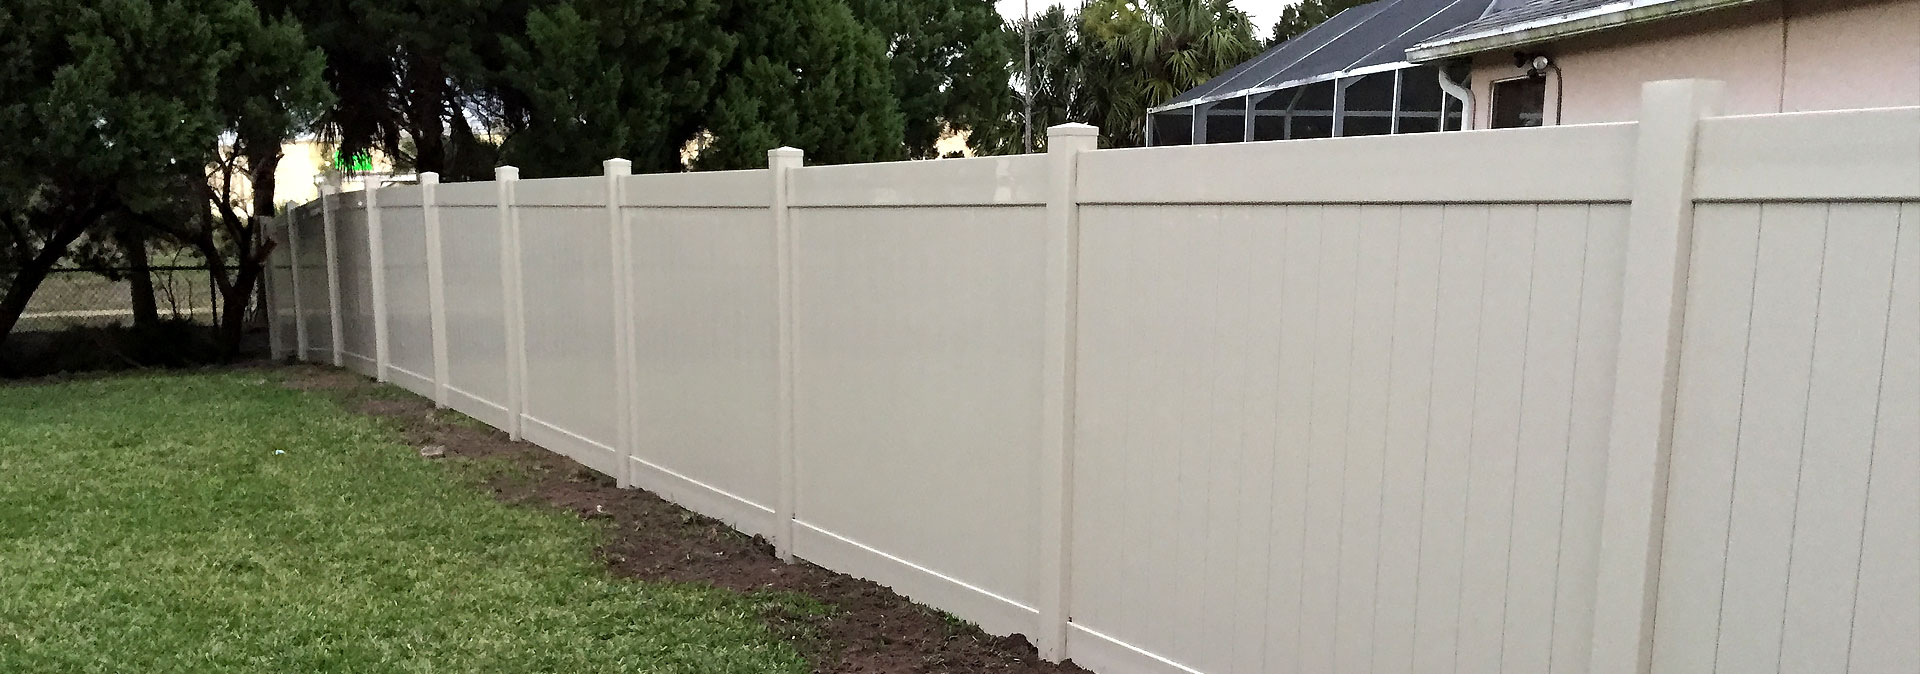 Aluminum fence solution for your property by fence dynamics - Vinyl railing reviews ...